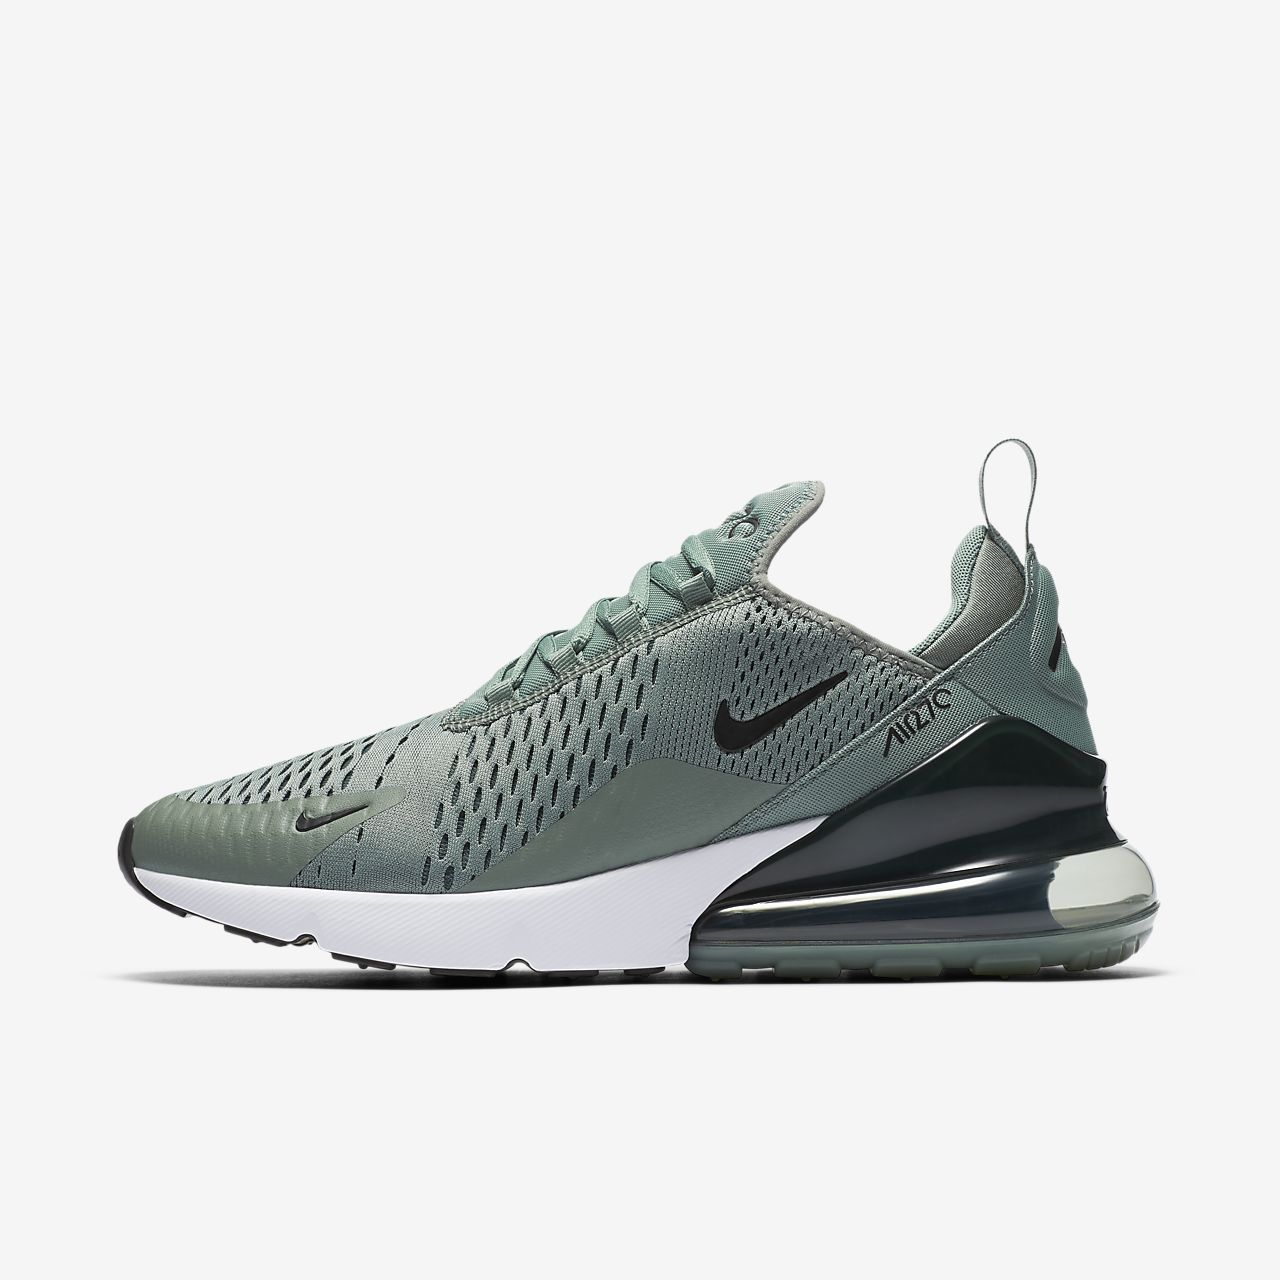 nouvelle nike 2018 chaussure